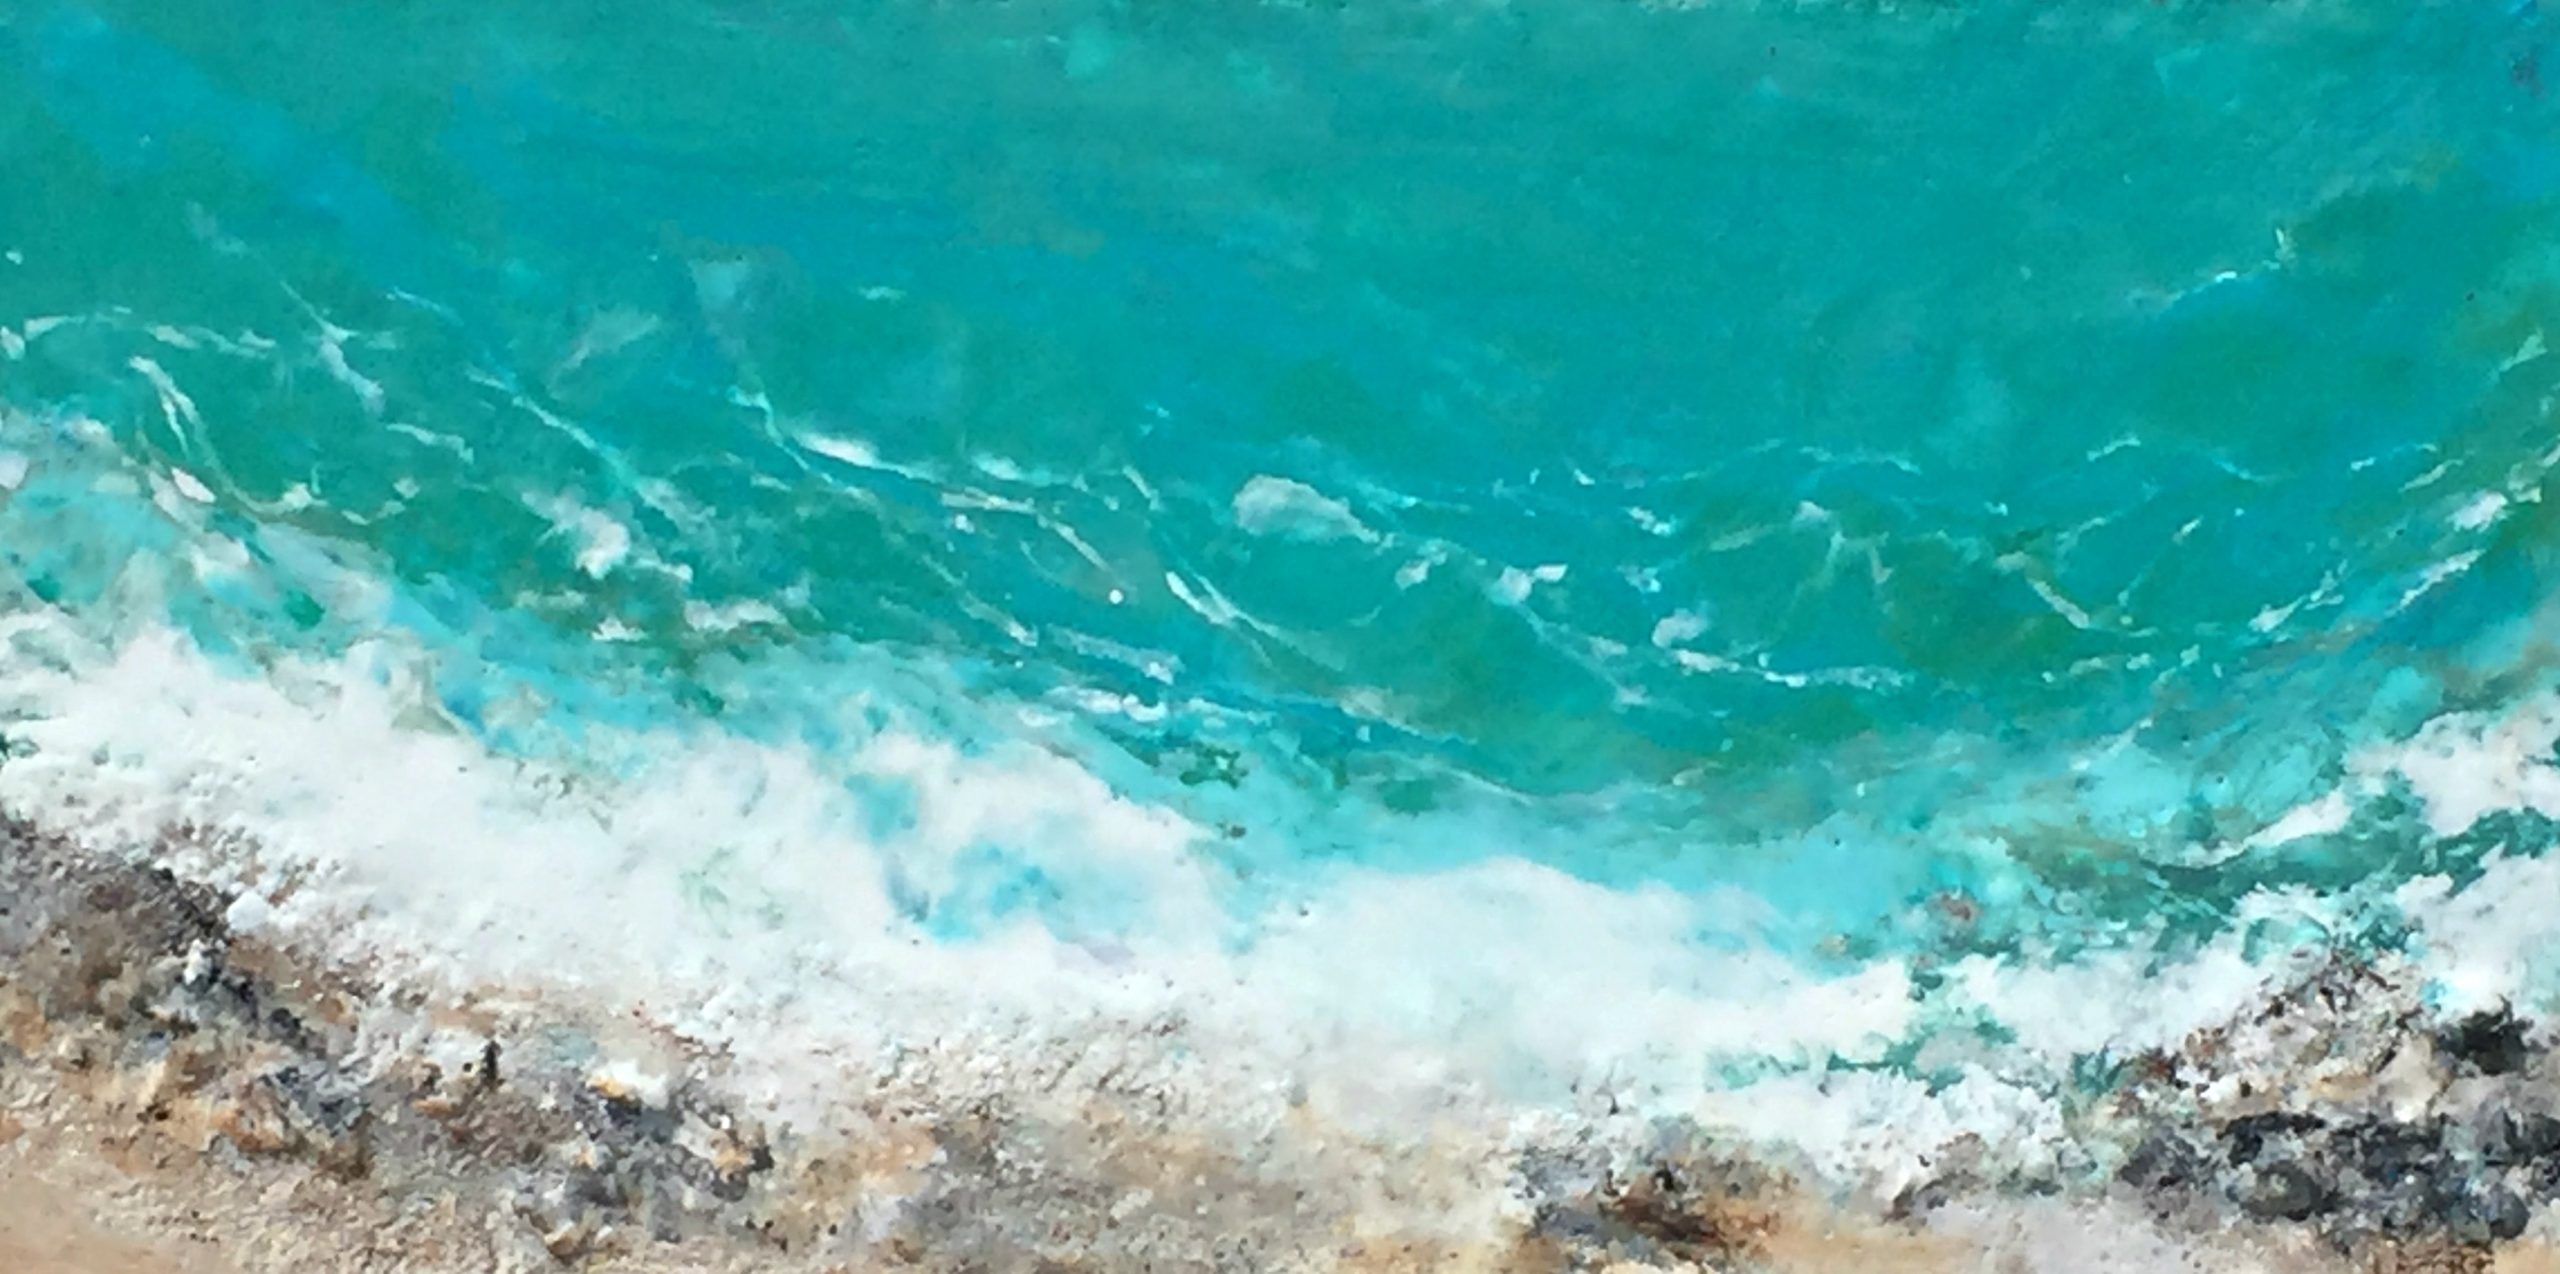 Seas the Day, encaustic seascape painting by Lee Anne LaForge | Effusion Art Gallery + Cast Glass Studio, Invermere BC